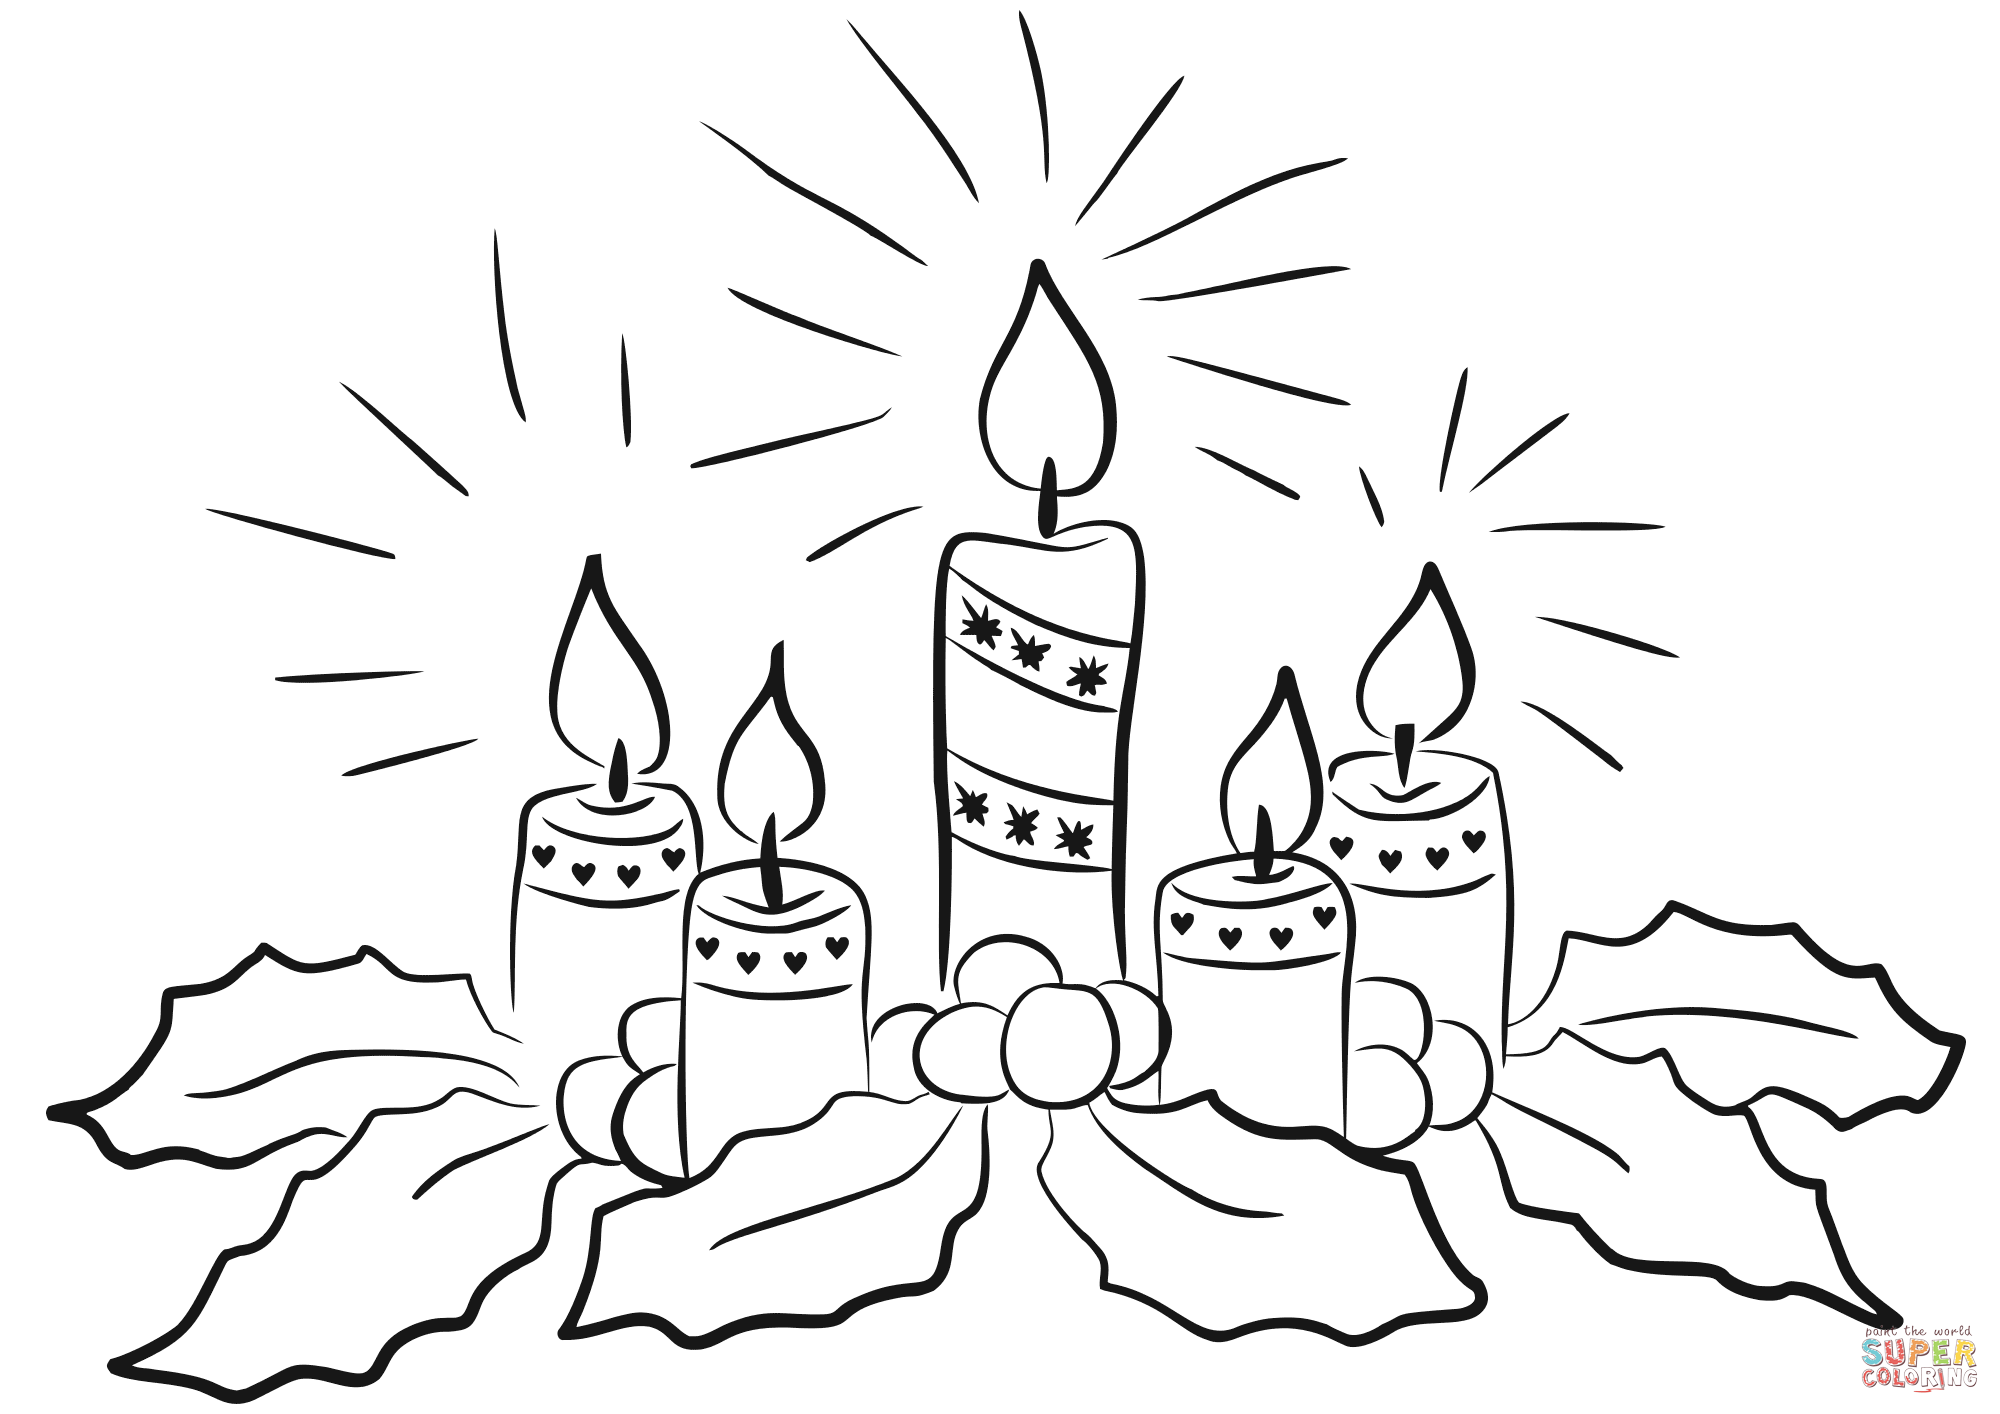 Christmas Candle Black And White Advent Candles Coloring Page Free Printable Coloring Pages